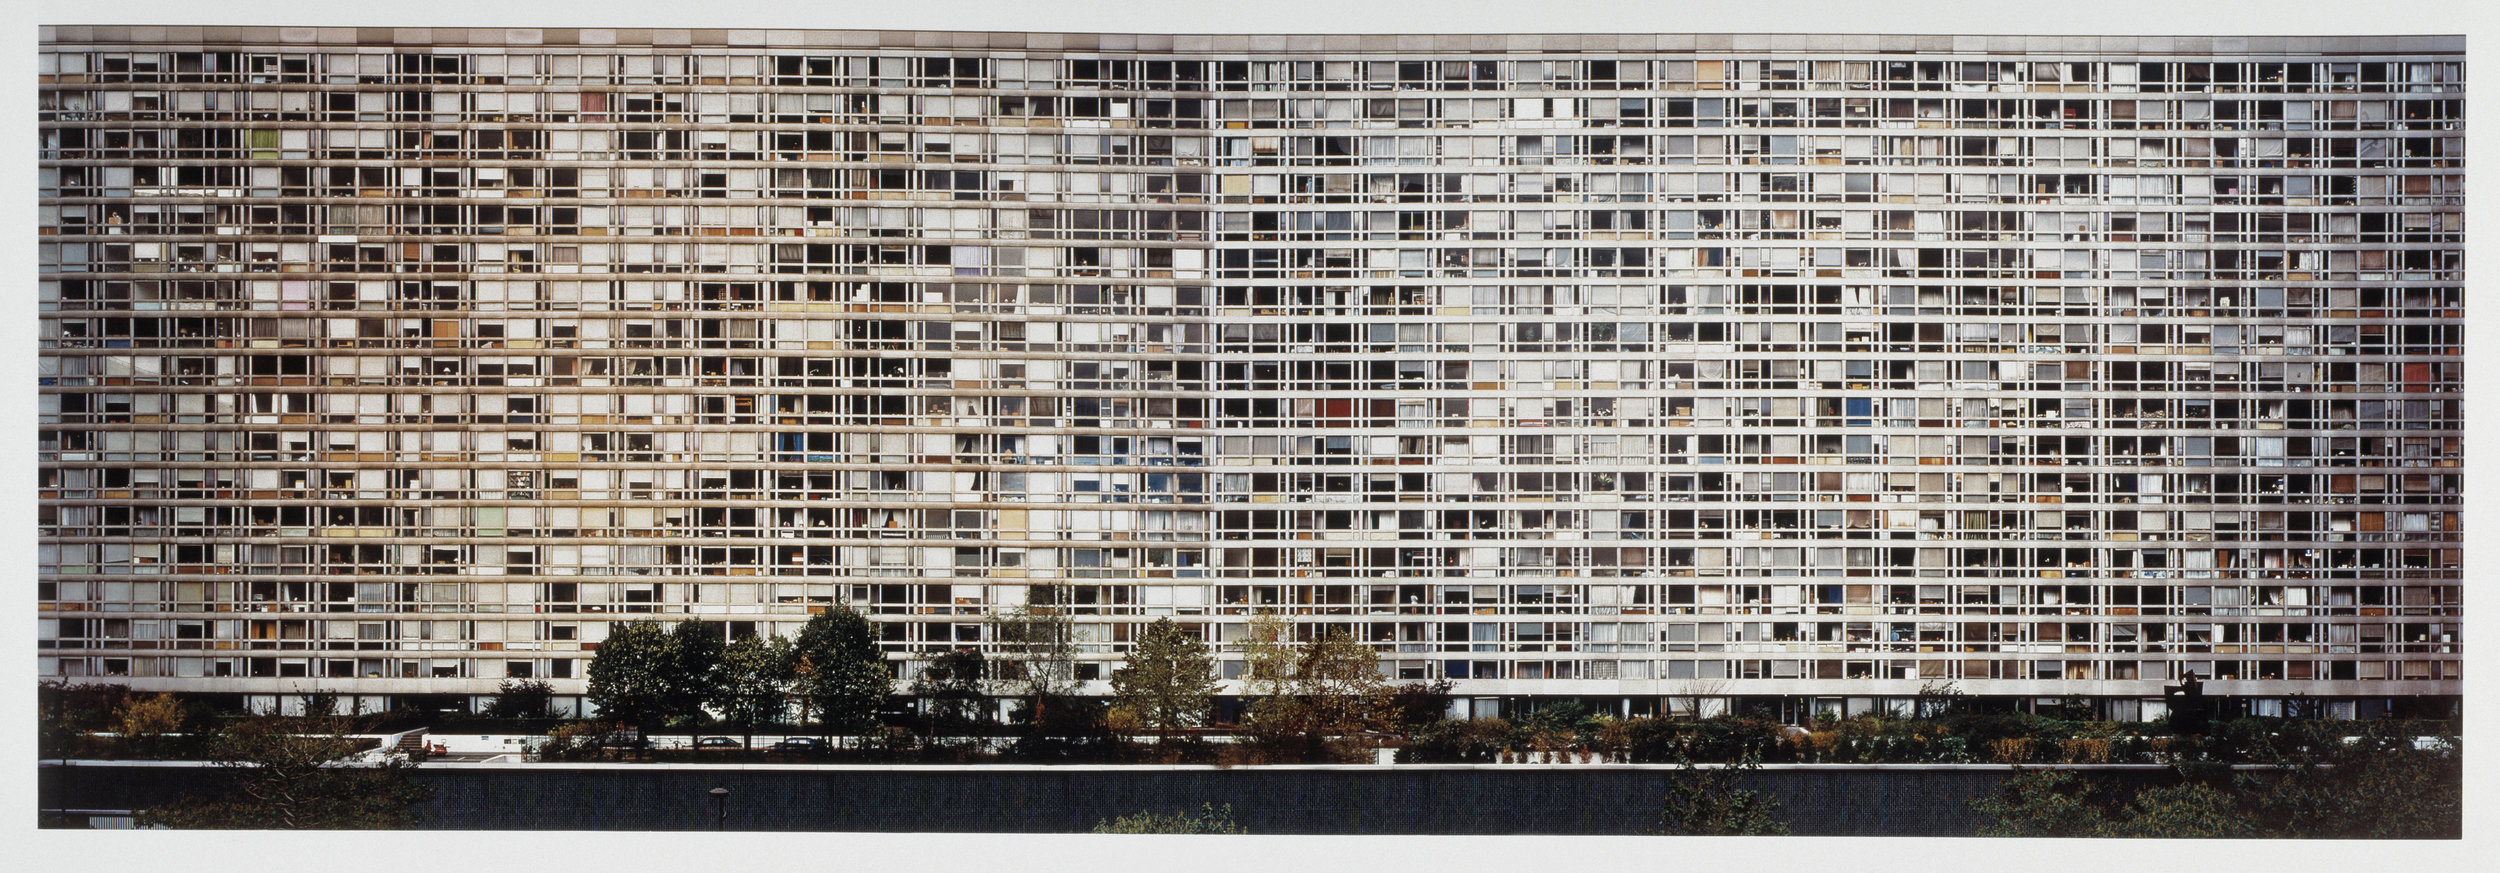 Andreas Gursky,  Paris Montparnasse , 1993. Credit: © Tate, London 2018